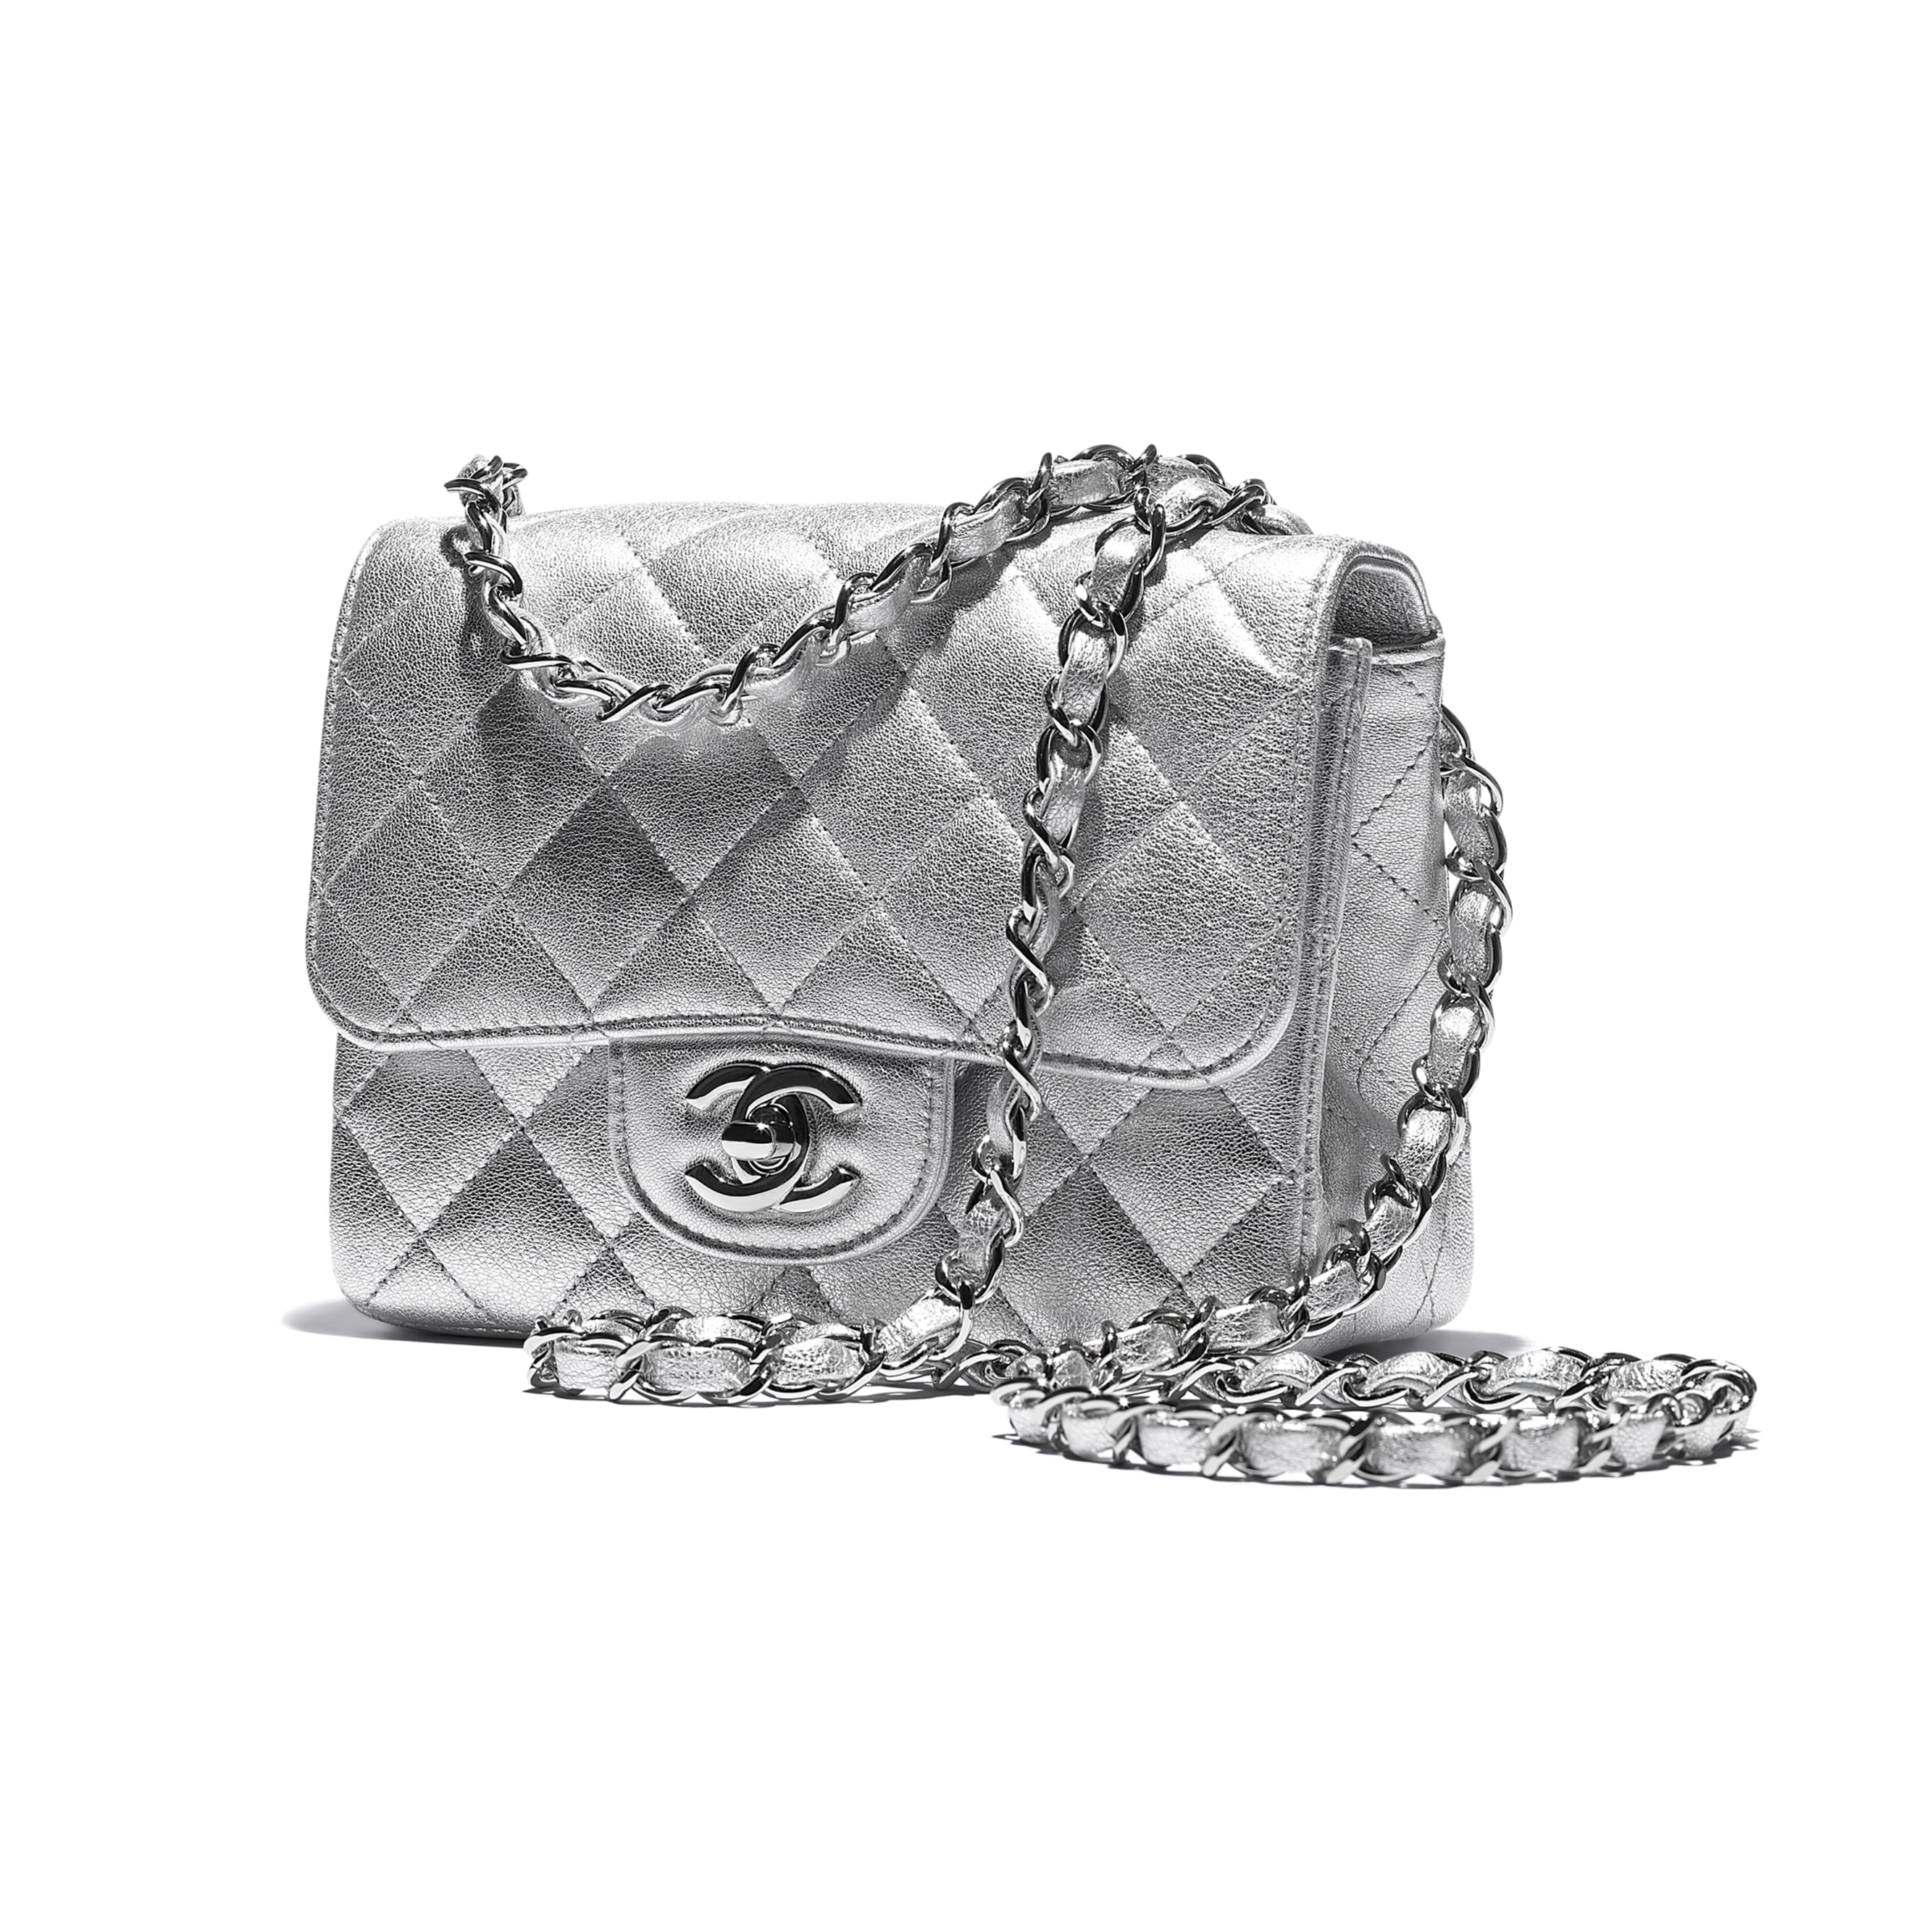 Mini Flap Bag - Silver - Metallic Lambskin & Silver Metal - CHANEL - Extra view - see standard sized version